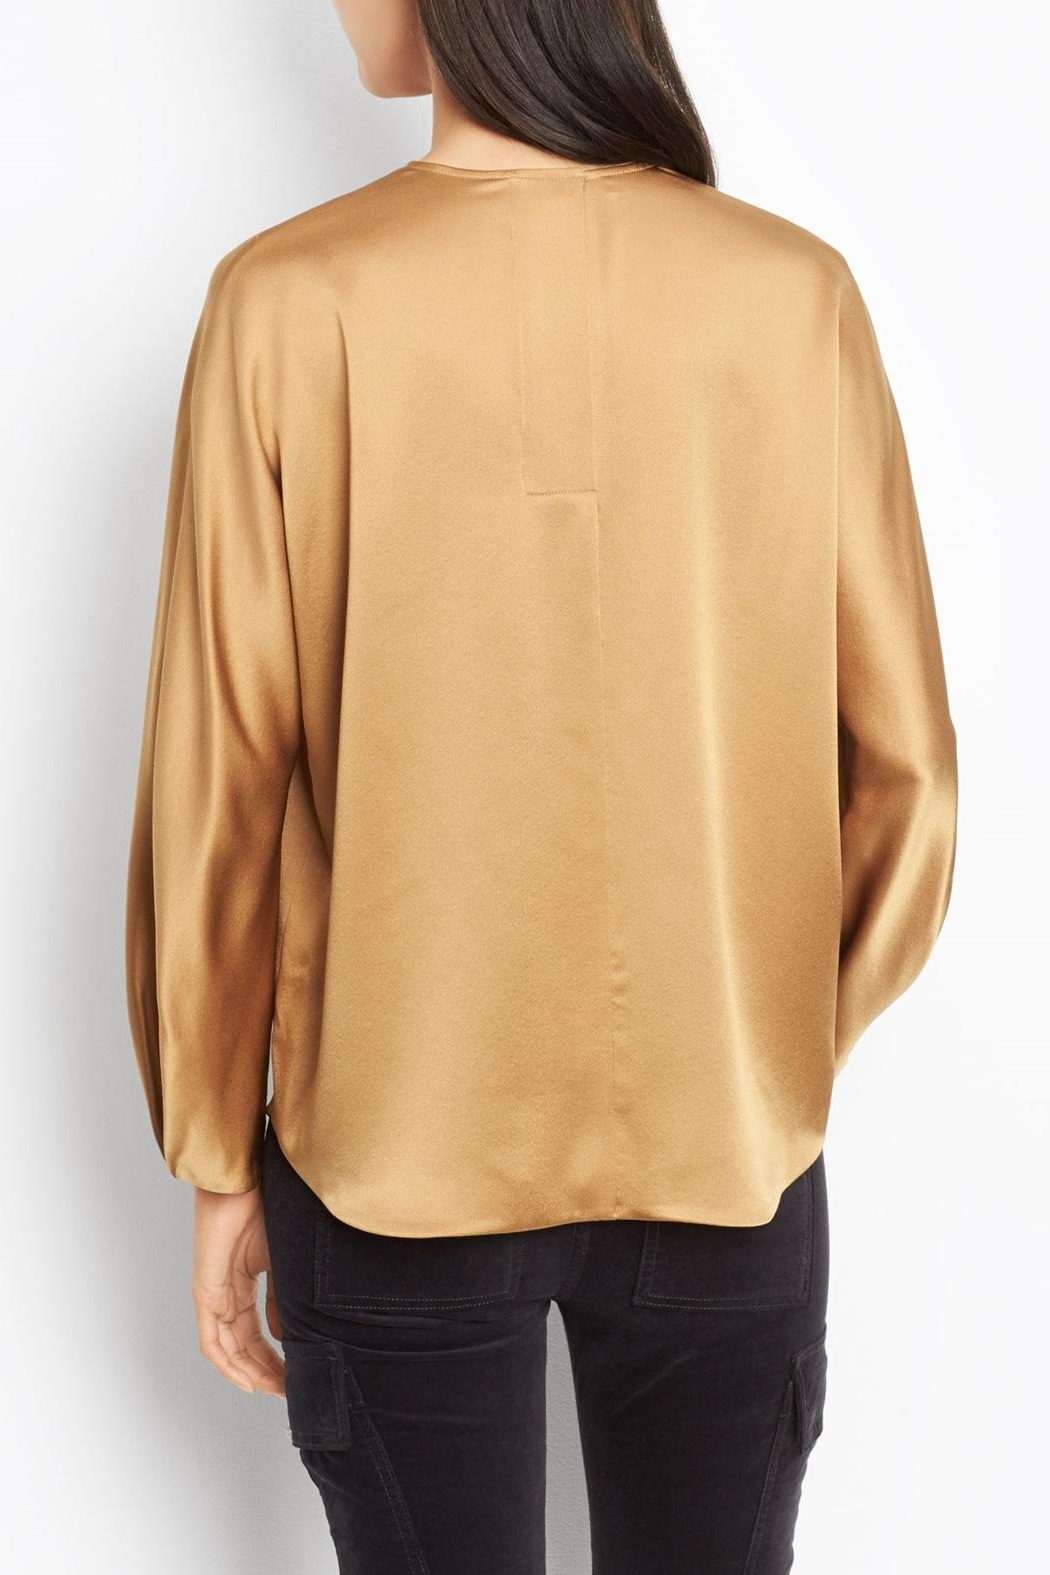 Vince Slit Back Blouse - Side Cropped Image